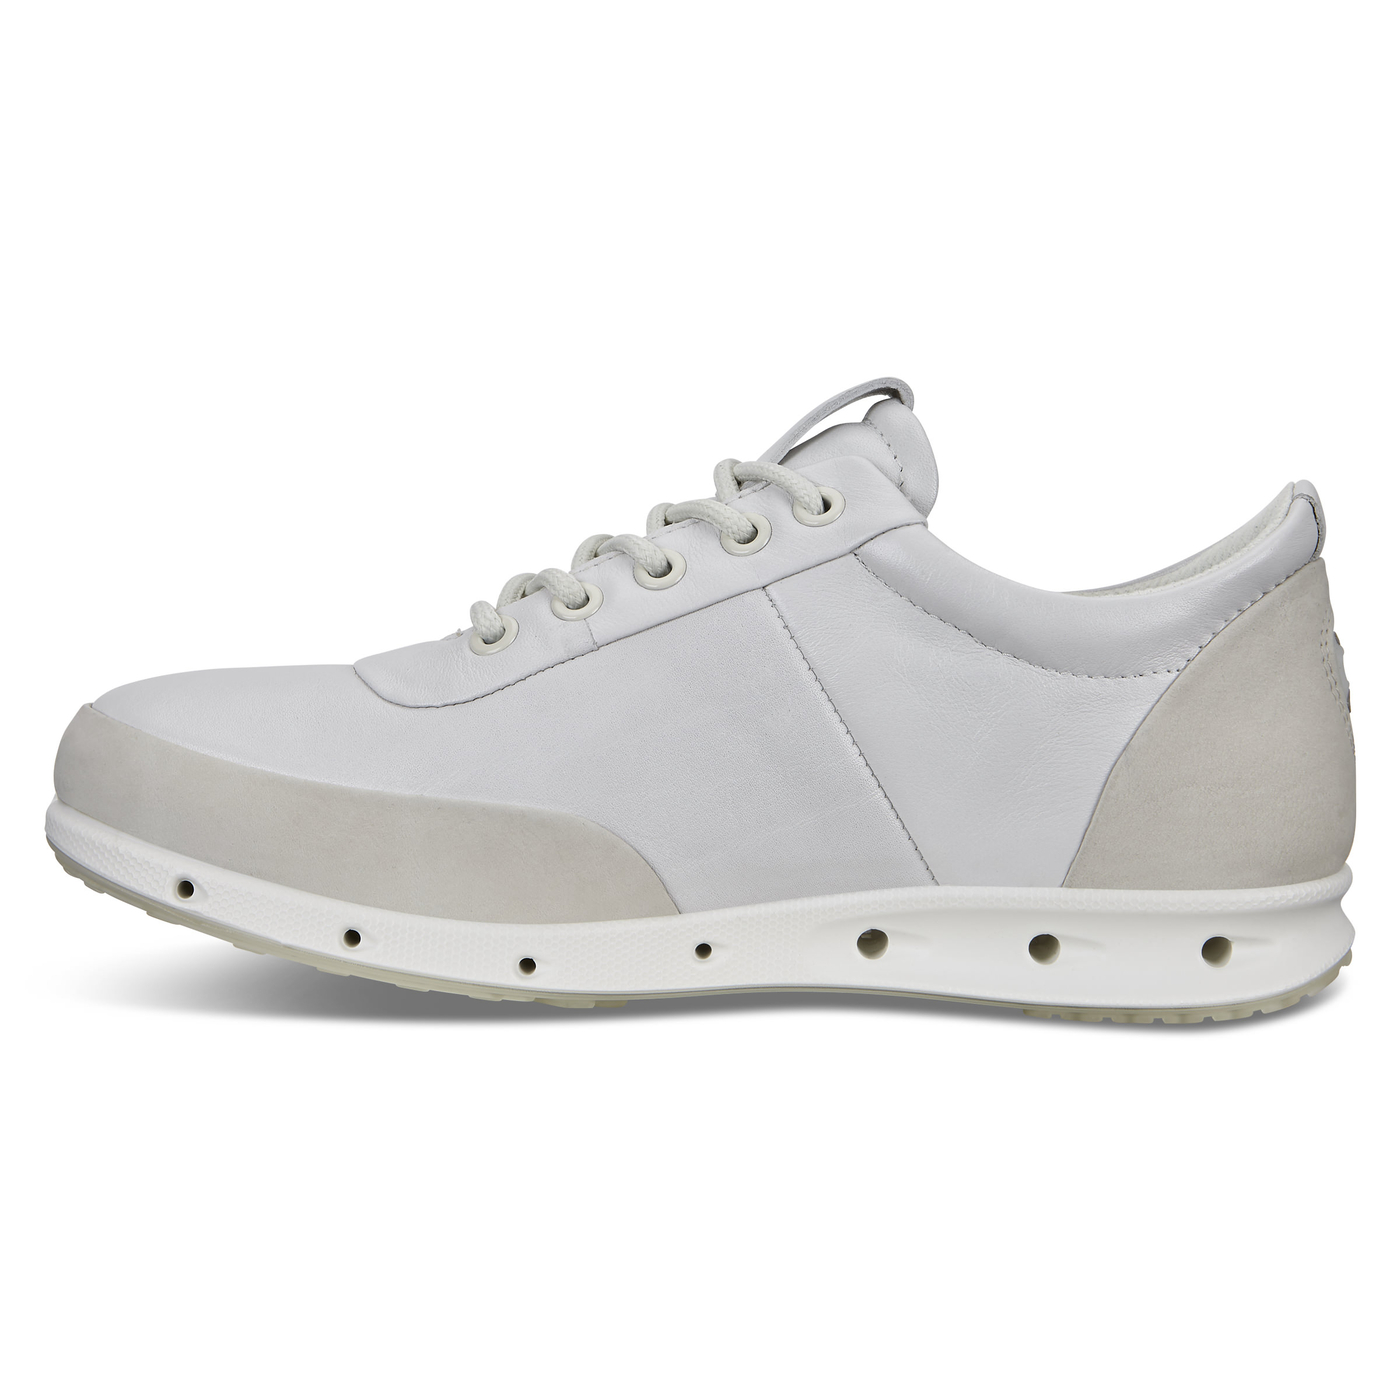 ECCO COOL Womens Shoe